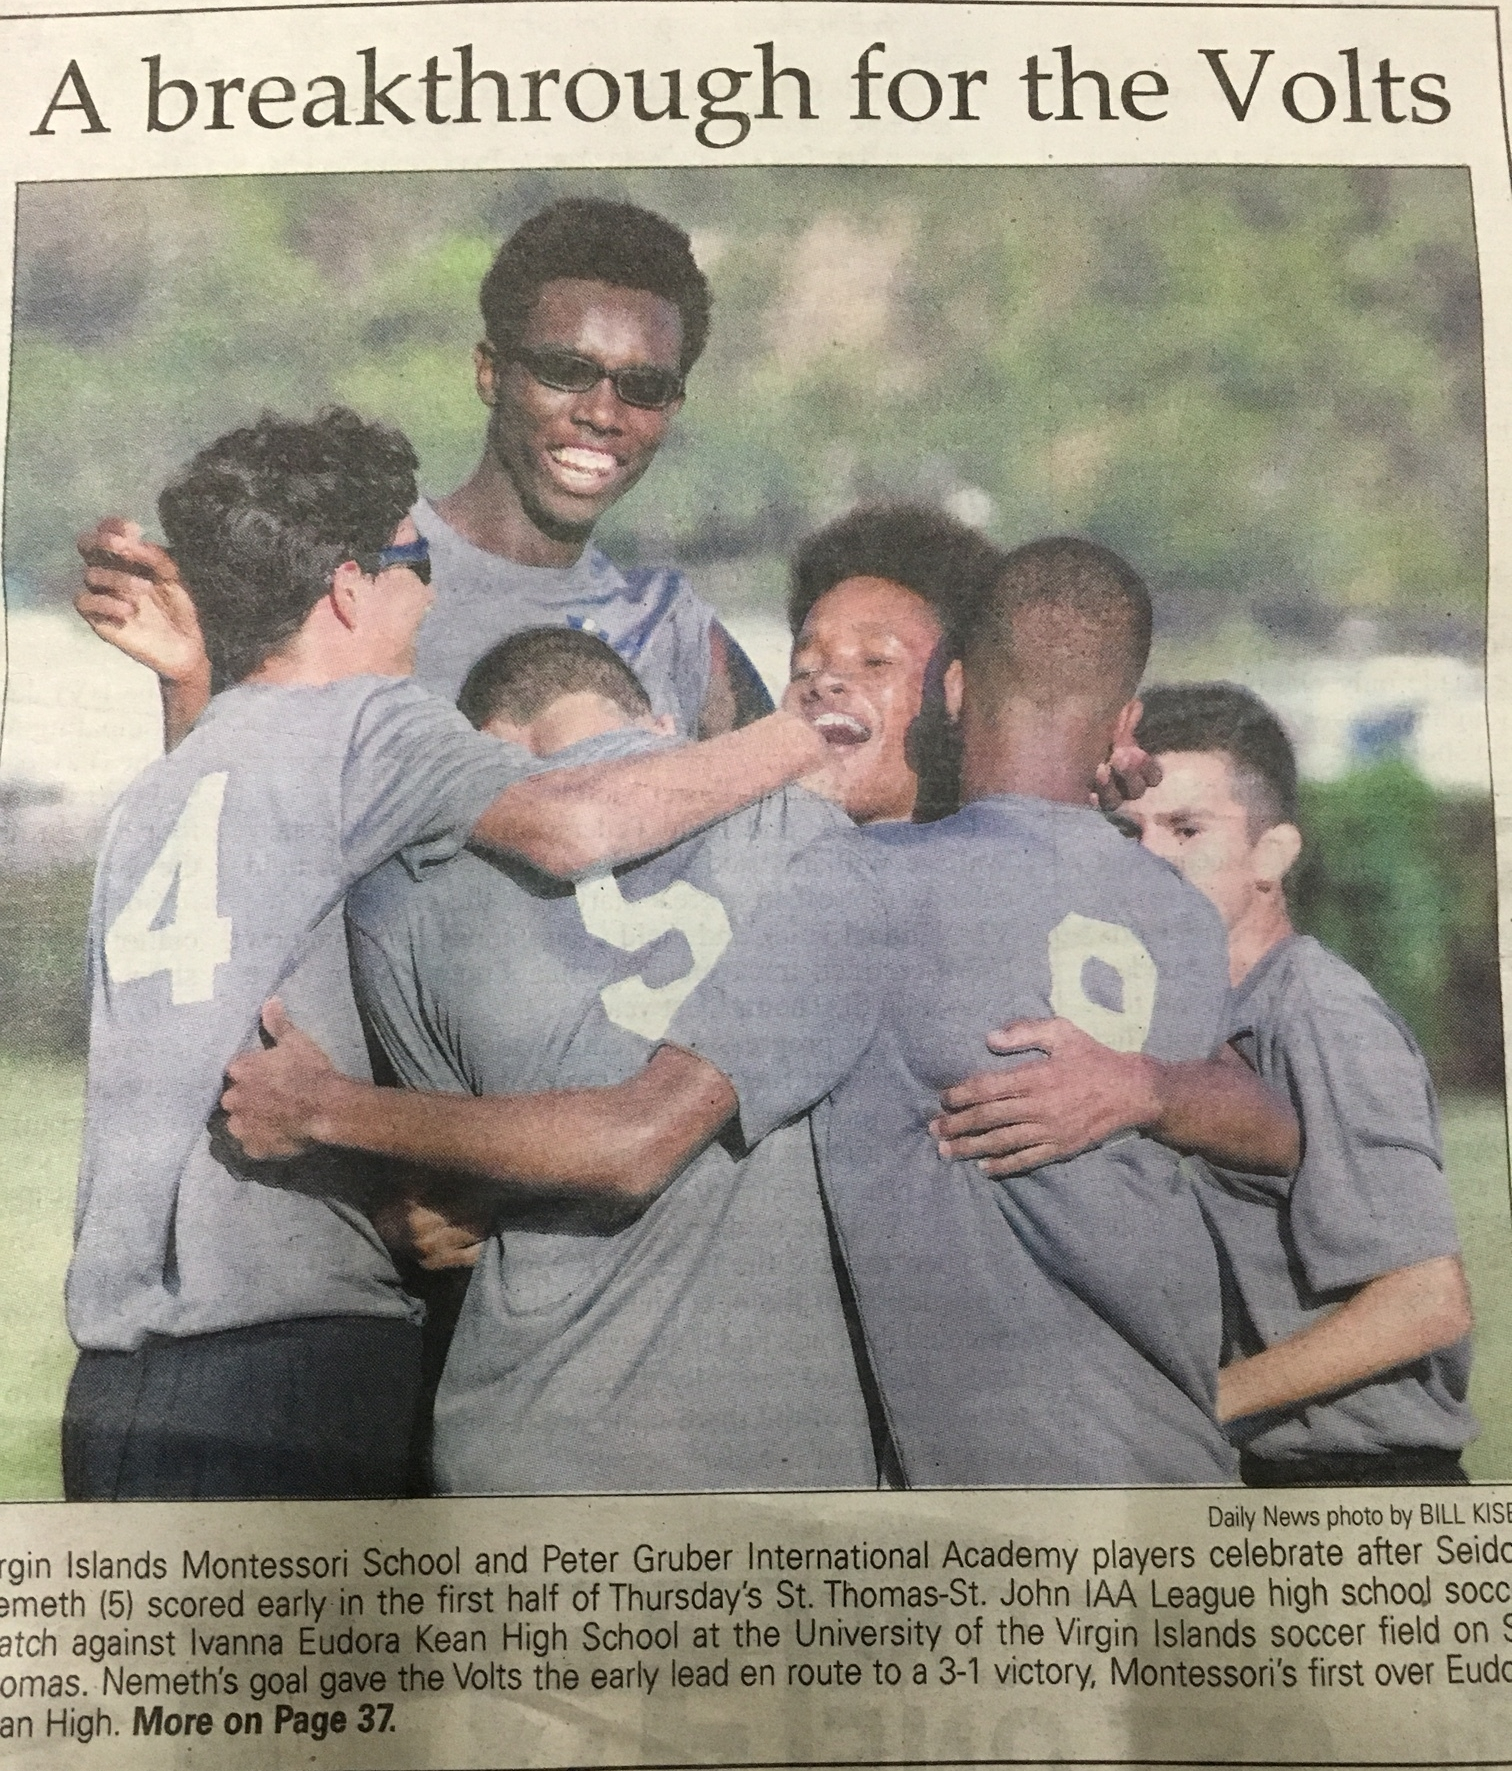 Volts get some well-deserved ink from VI Daily News for their 3-1 victory over Kean last night.